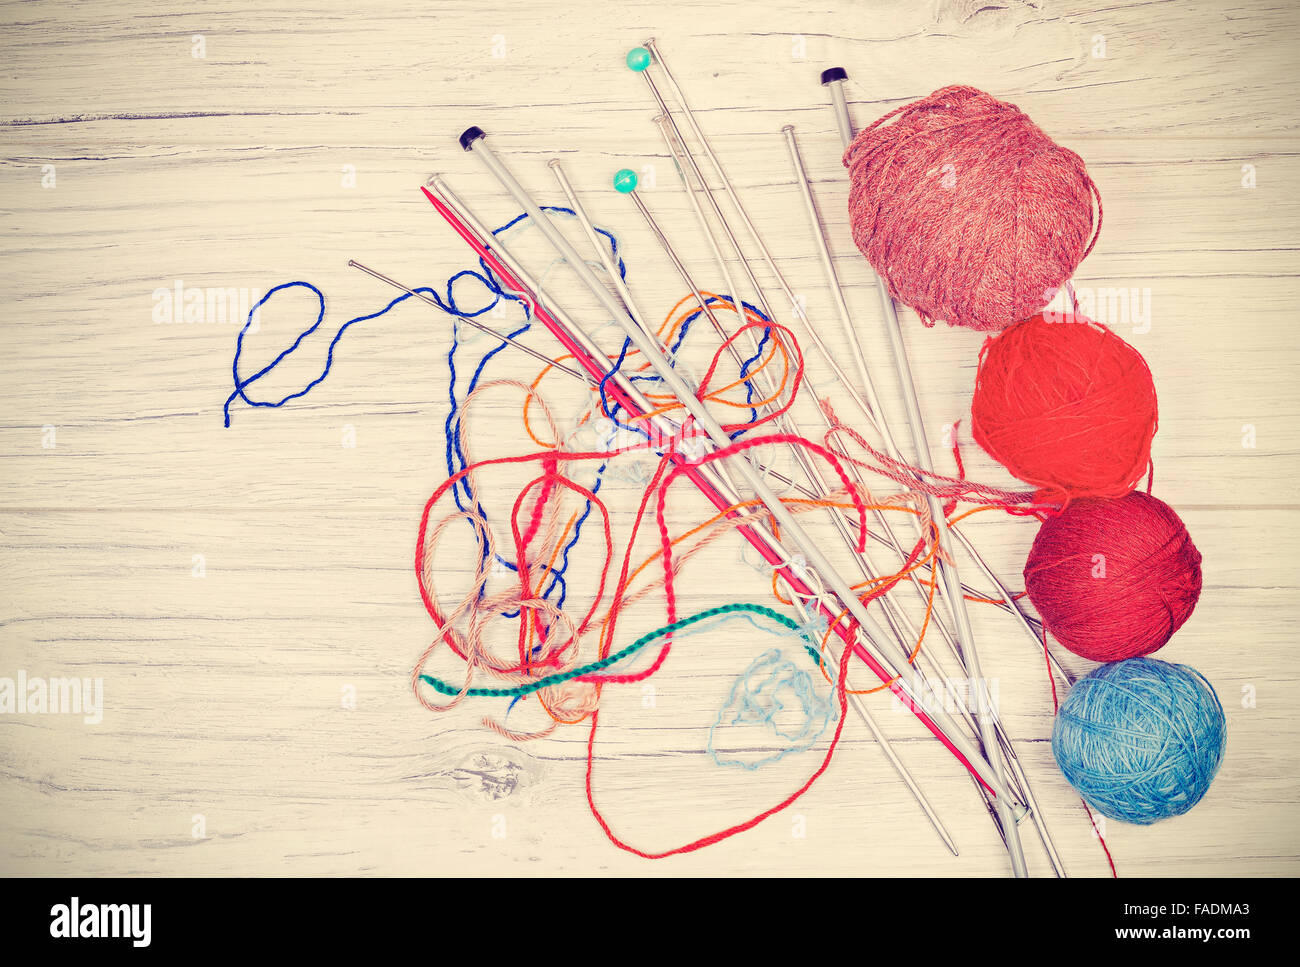 Retro toned tangled threads with yarn balls and needles on wooden board, concept background with space for text. - Stock Image